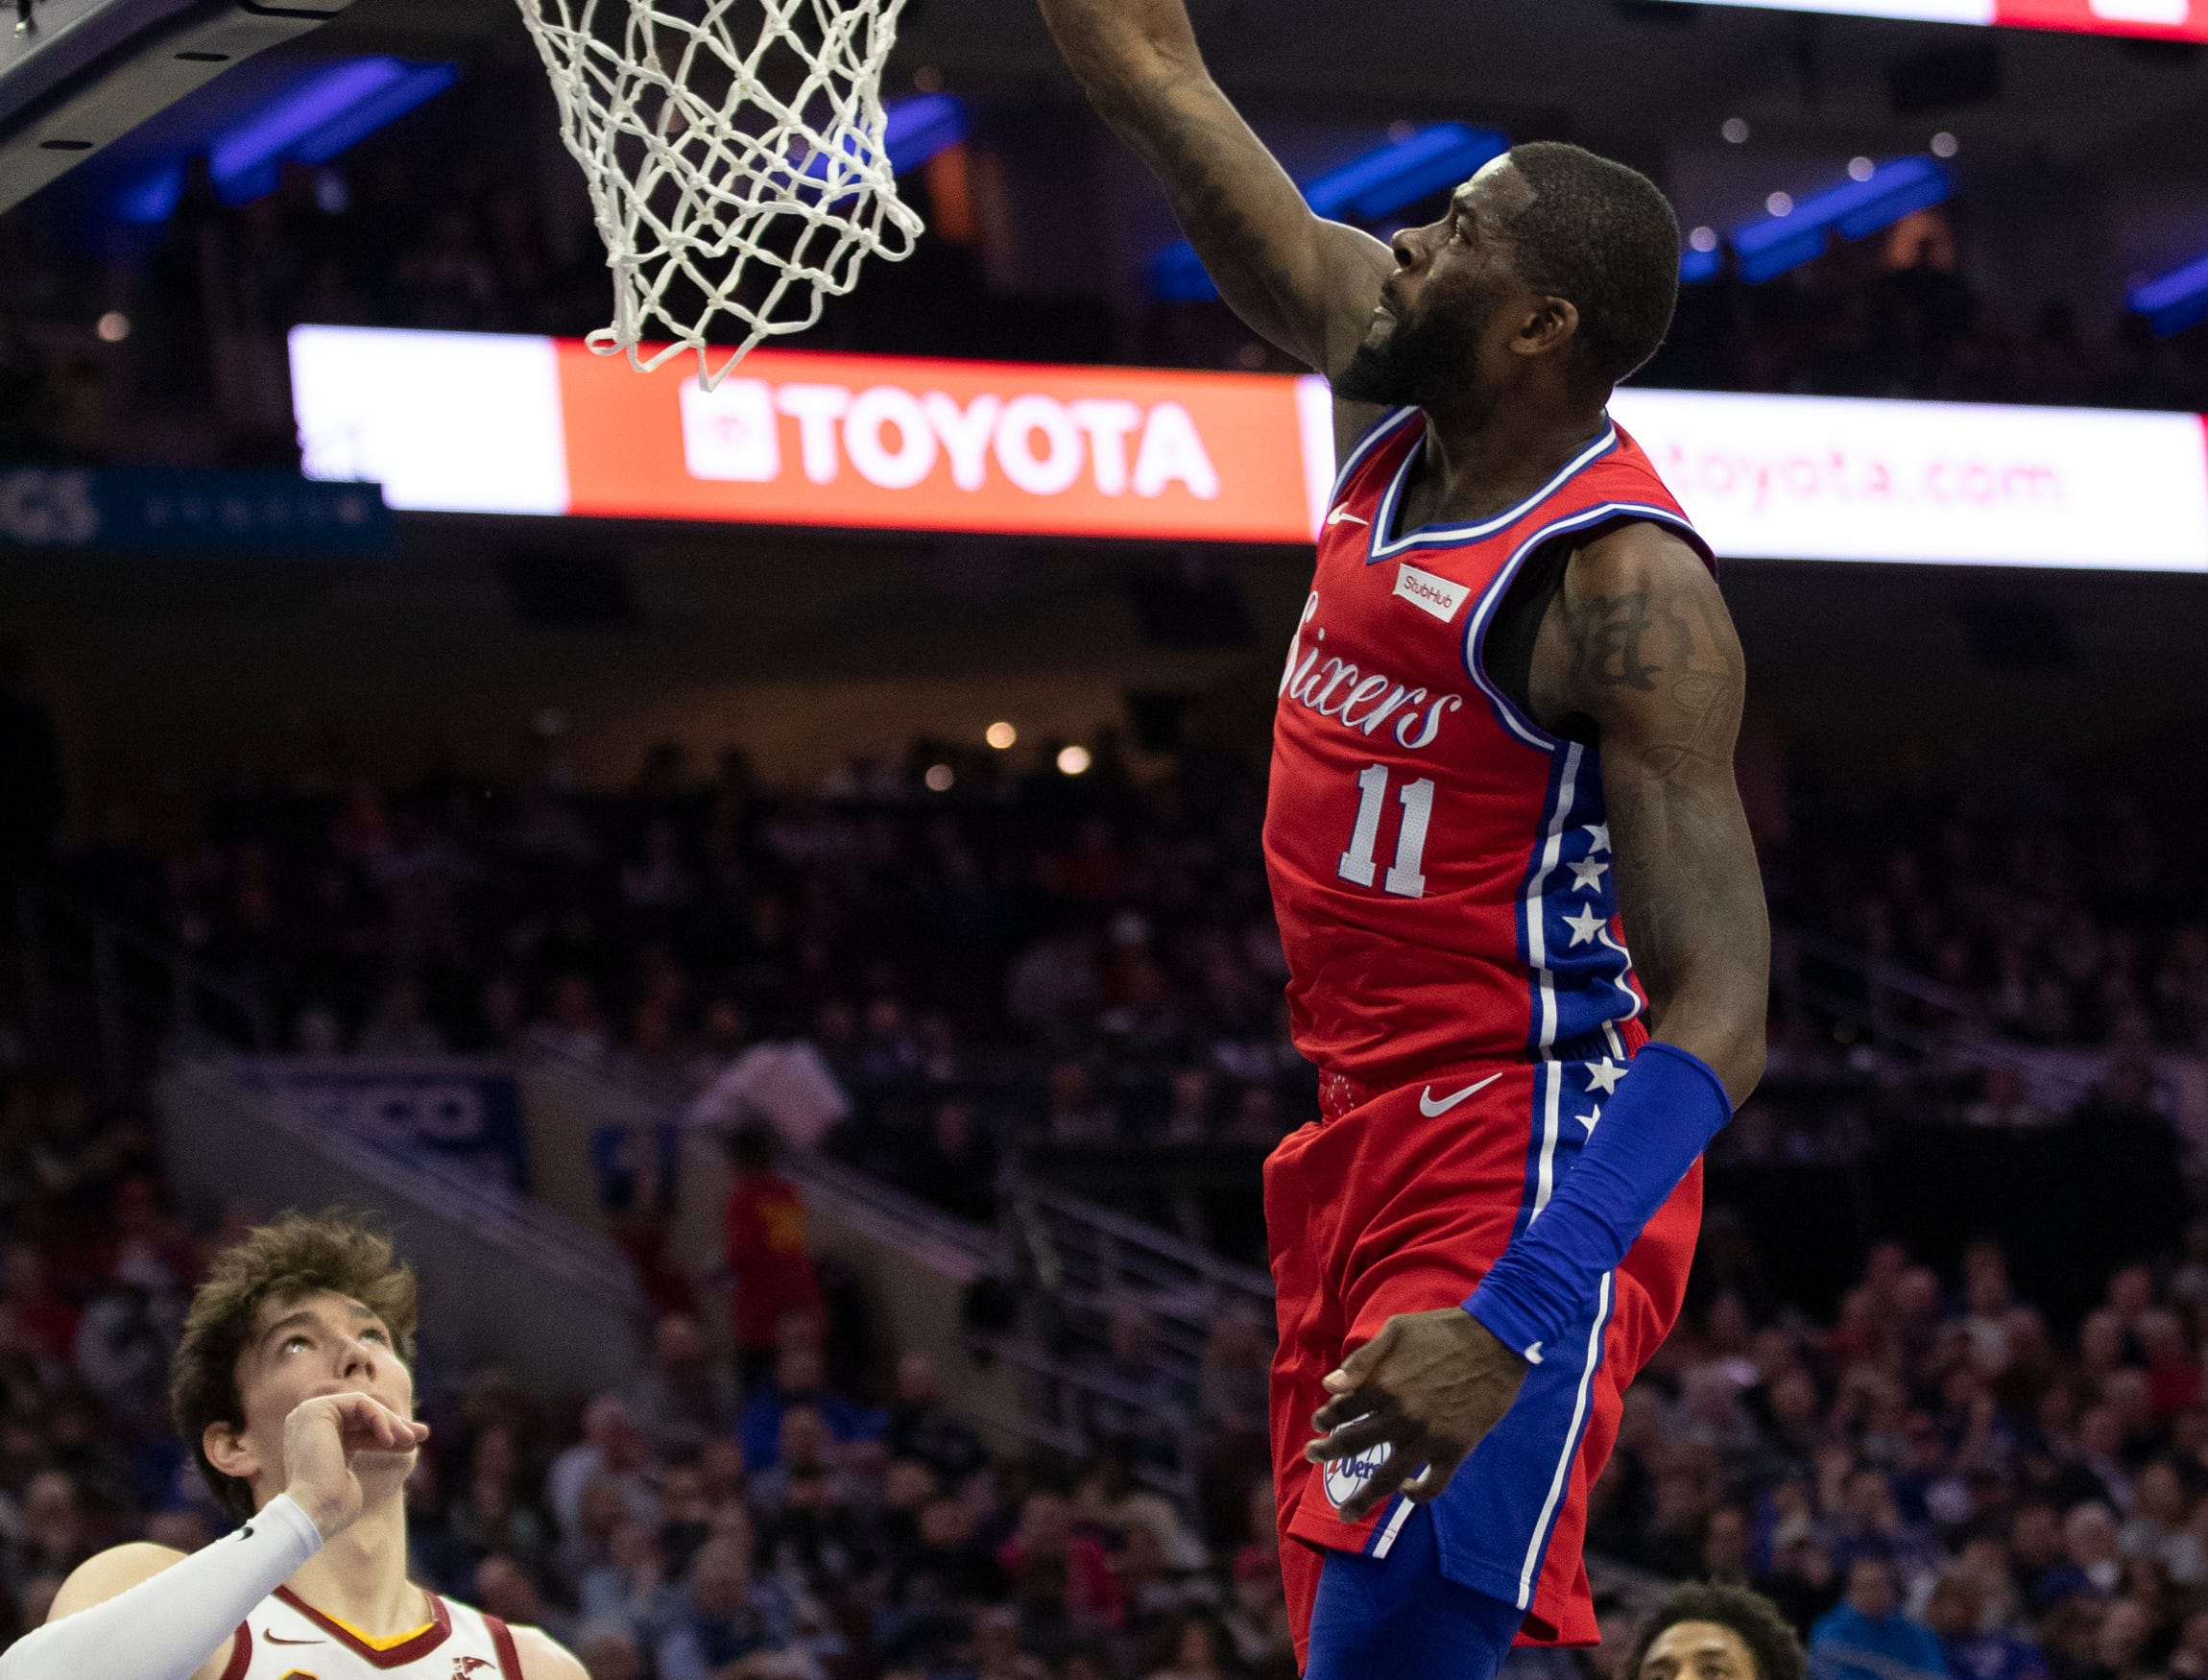 Philadelphia 76ers' James Ennis III, right, dunks the ball with Cleveland Cavaliers' Cedi Osman, left, of Turkey, looking on during the first half of an NBA basketball game, Tuesday, March 12, 2019, in Philadelphia. (AP Photo/Chris Szagola)